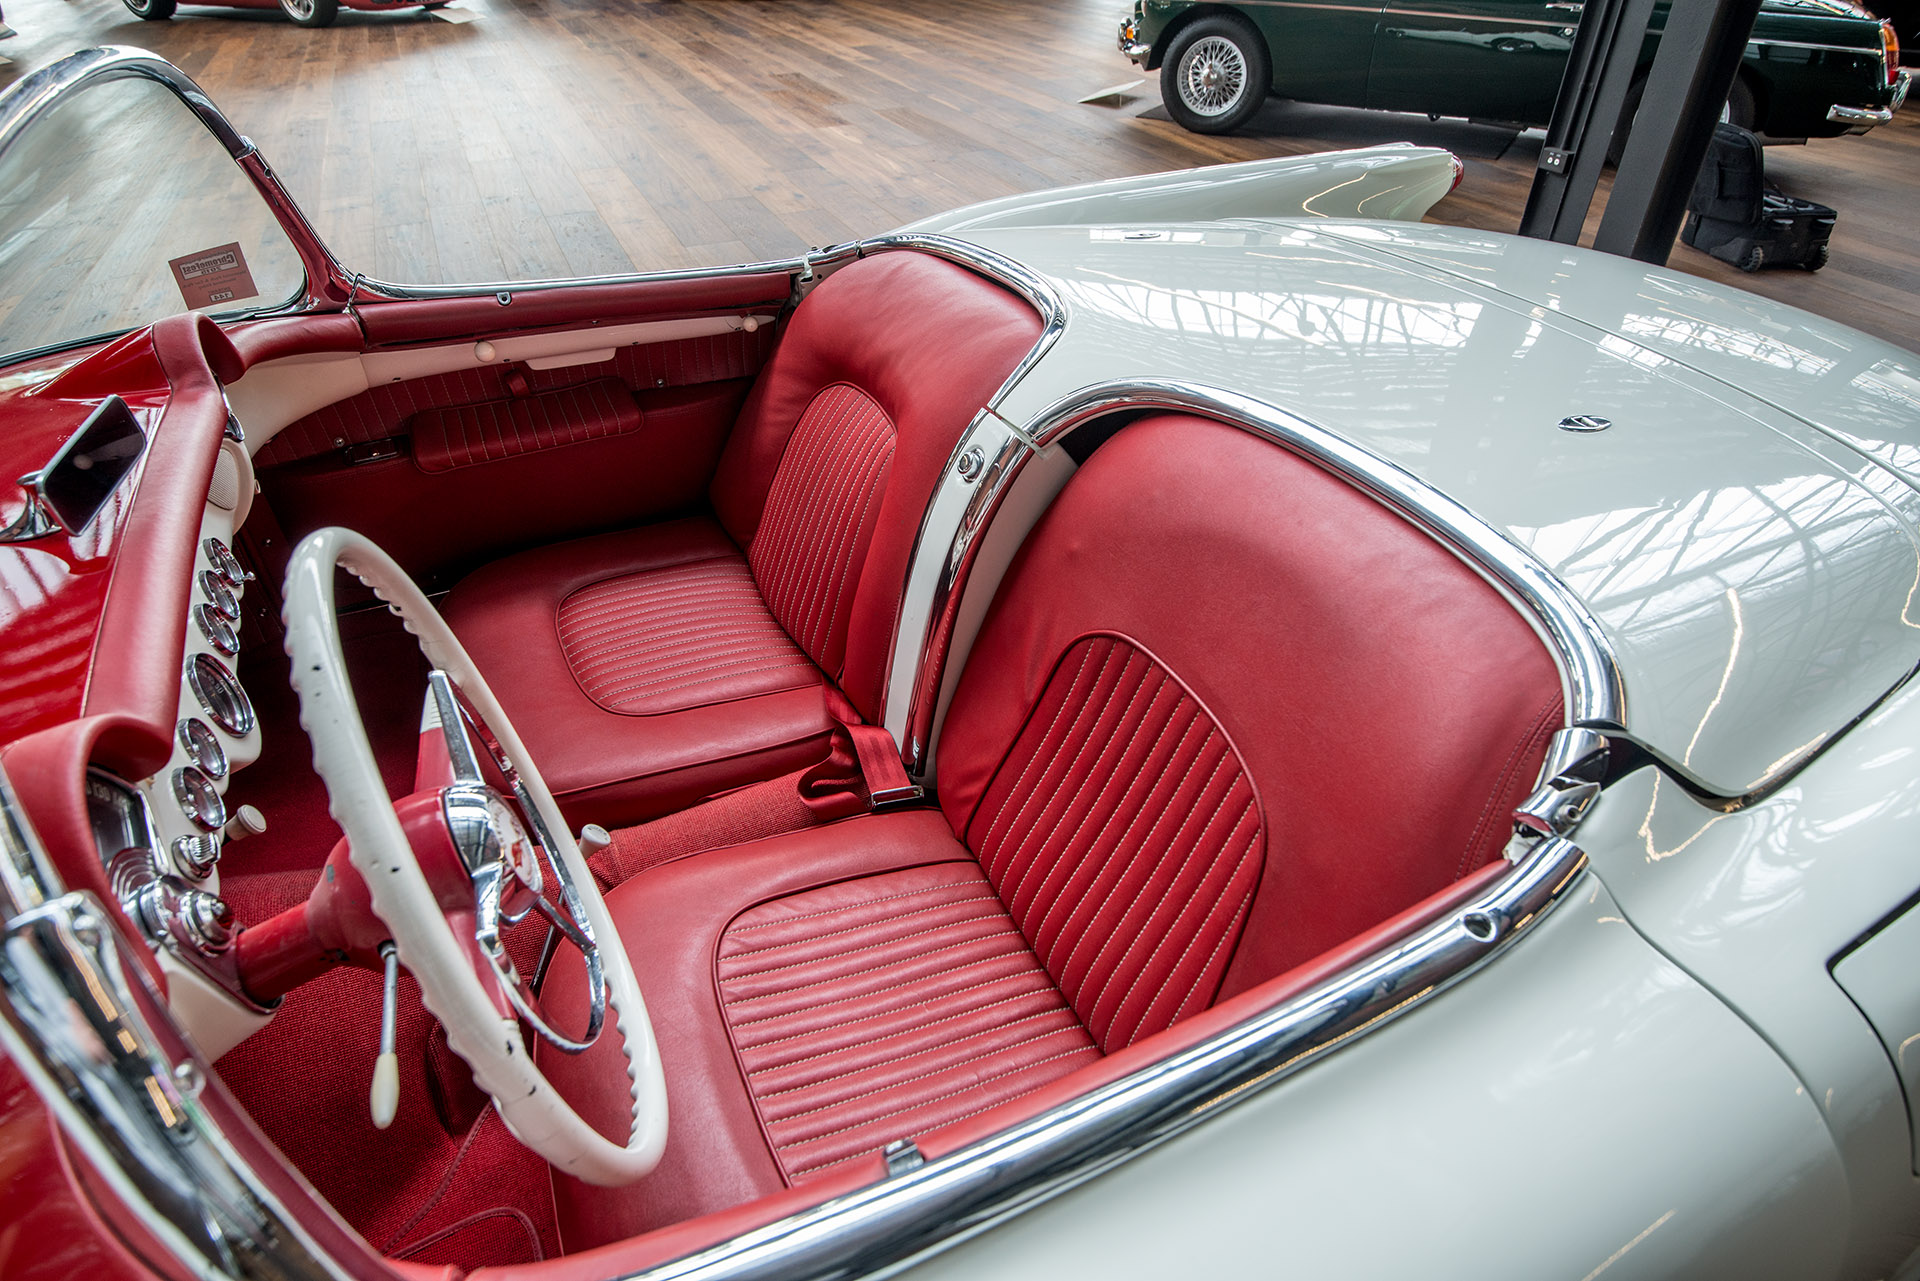 1954 Chevrolet Corvette C1 Convertible - Richmonds ...